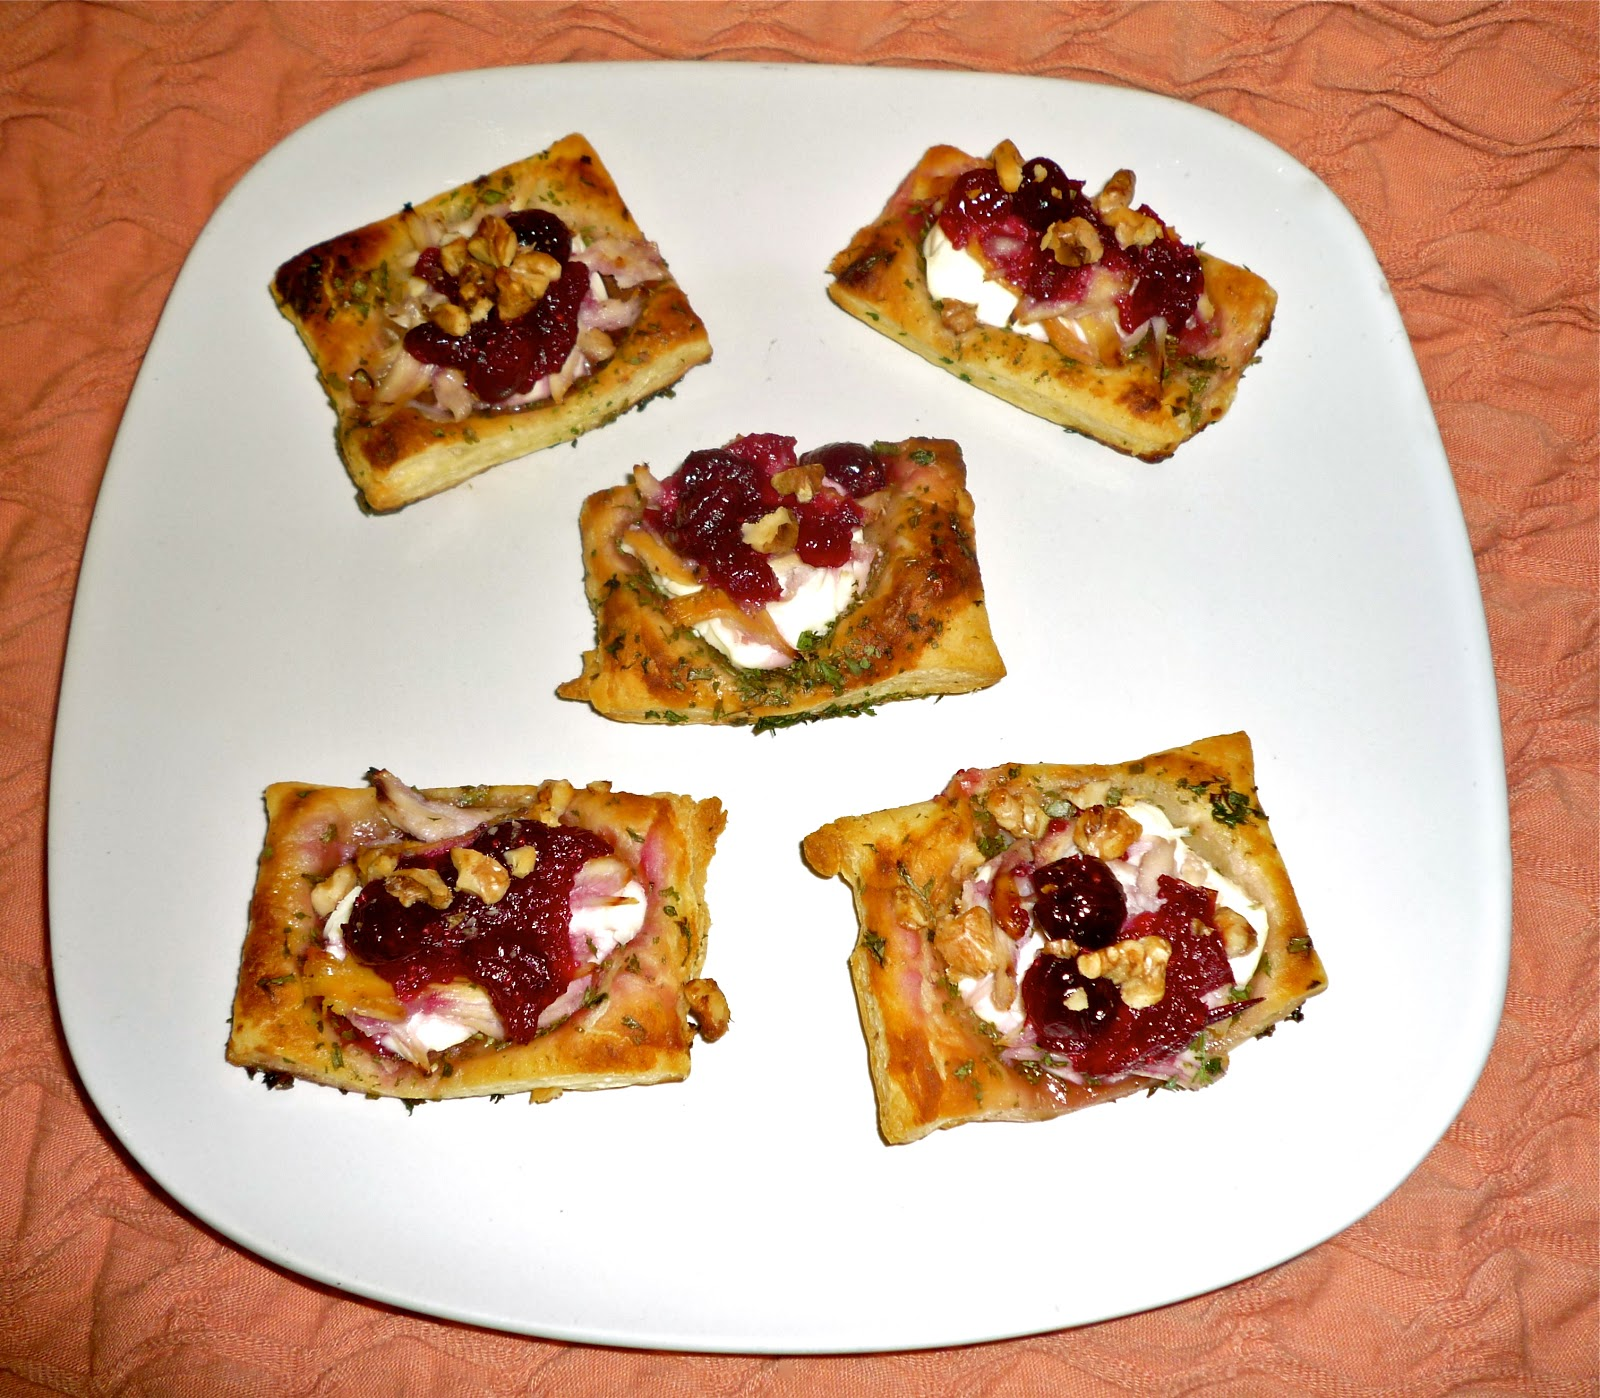 The weekend gourmet a simple and elegant thanksgiving appetizer